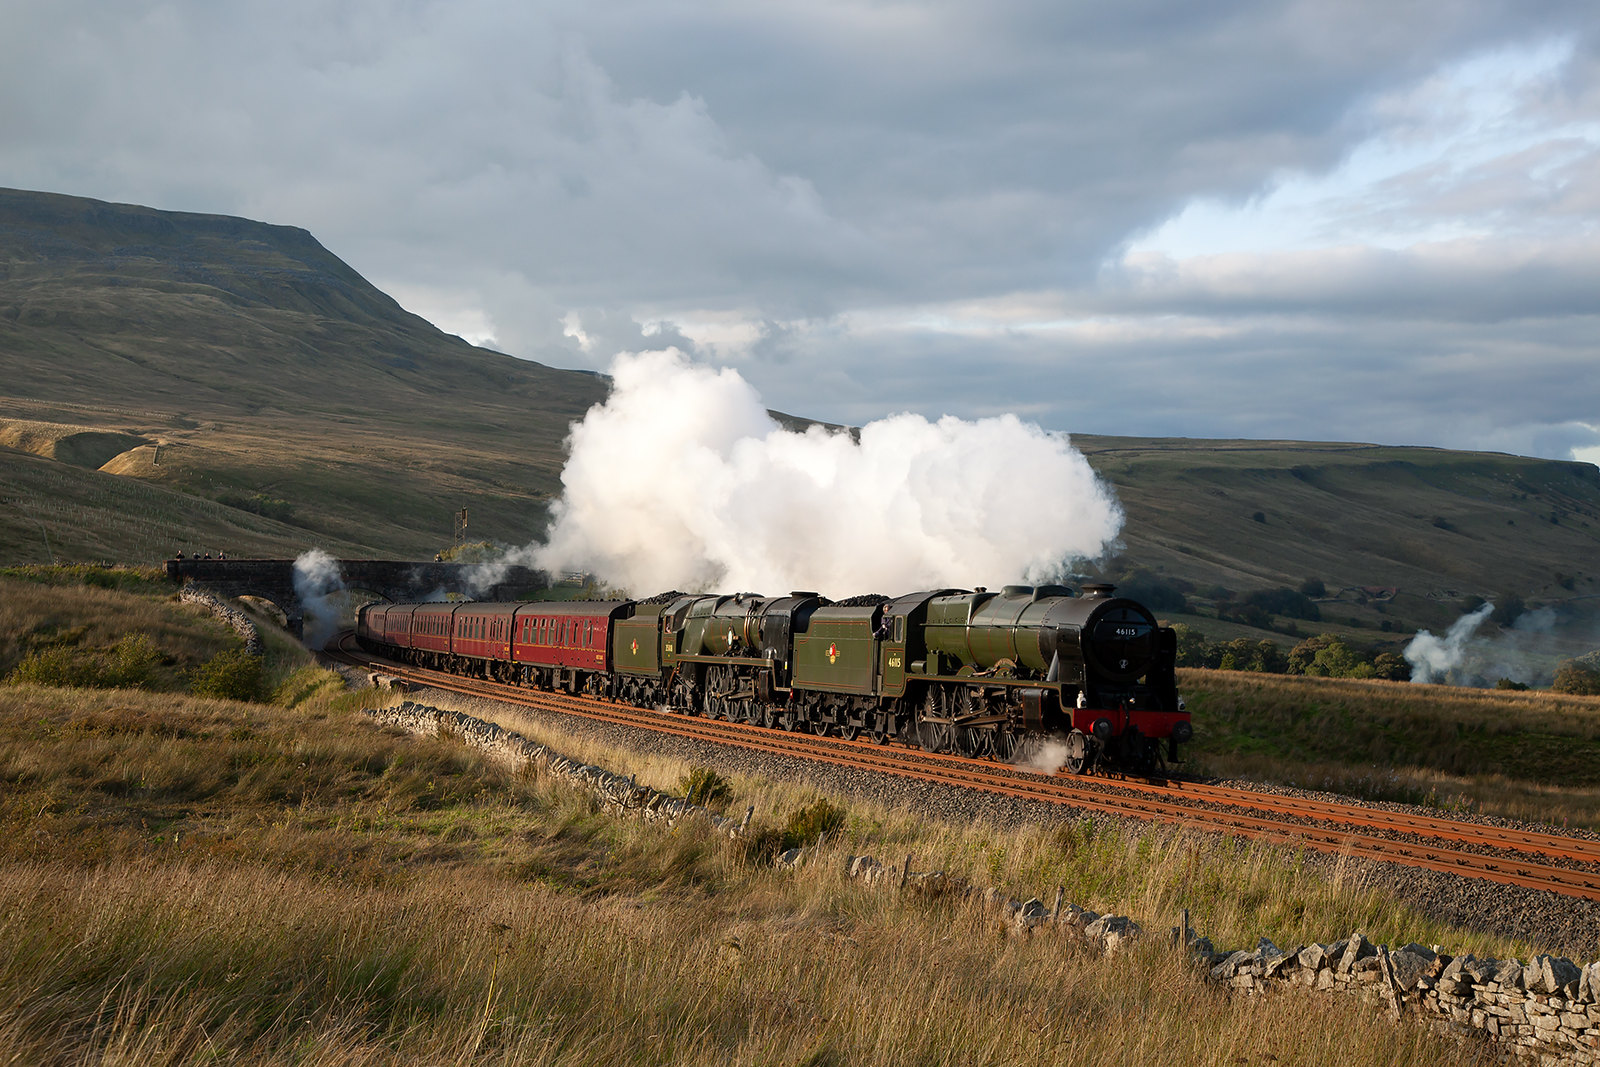 It was no surprise with the pairing of 46115 'Scots Guardsman' and 35018 'British India Line' that the 13 coach Waverley charter of 8th September 2019 sailed over the summit at Ais Gill effortlessly. An unusual combination to say the least, but a fine pairing in matching BR green livery.